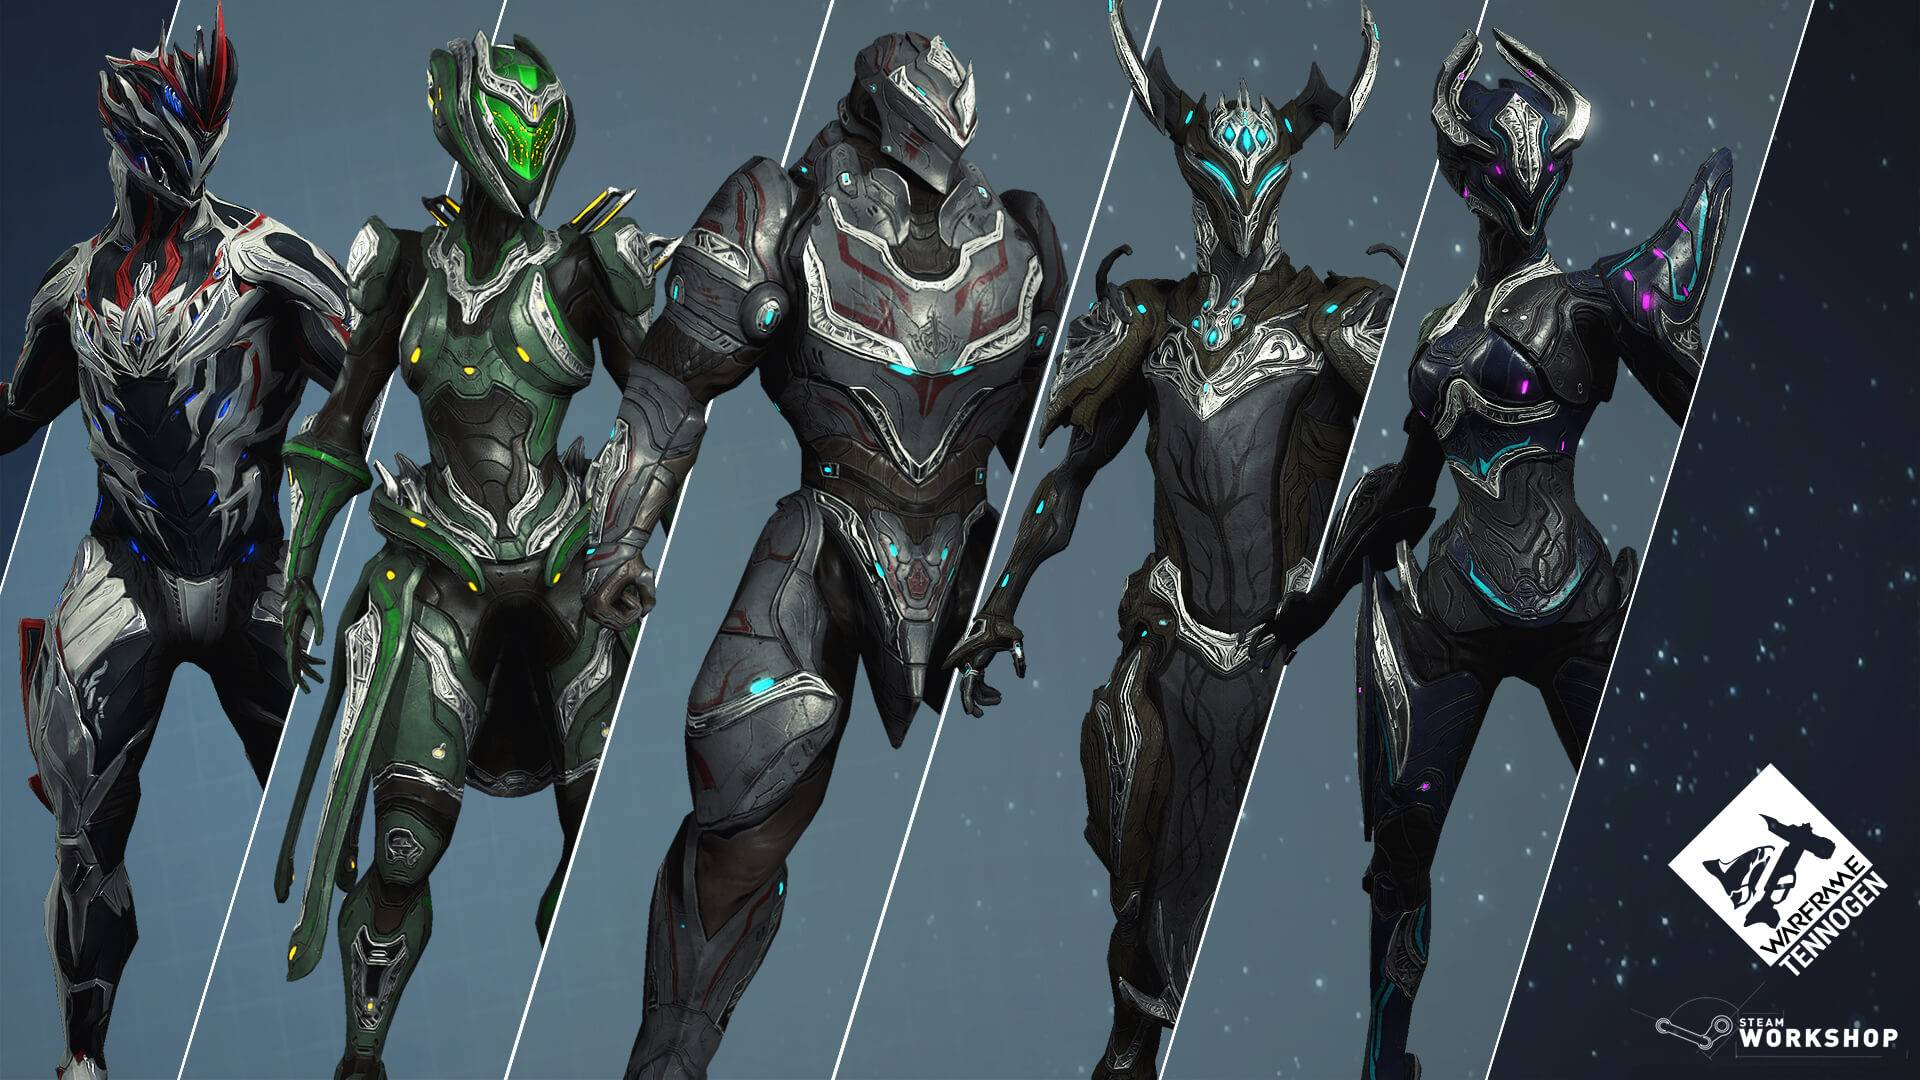 Warframe Tennogen Round 13 This update also features a variety of changes to various warframe abilities, new tennogen content, as well as a handful of. warframe tennogen round 13